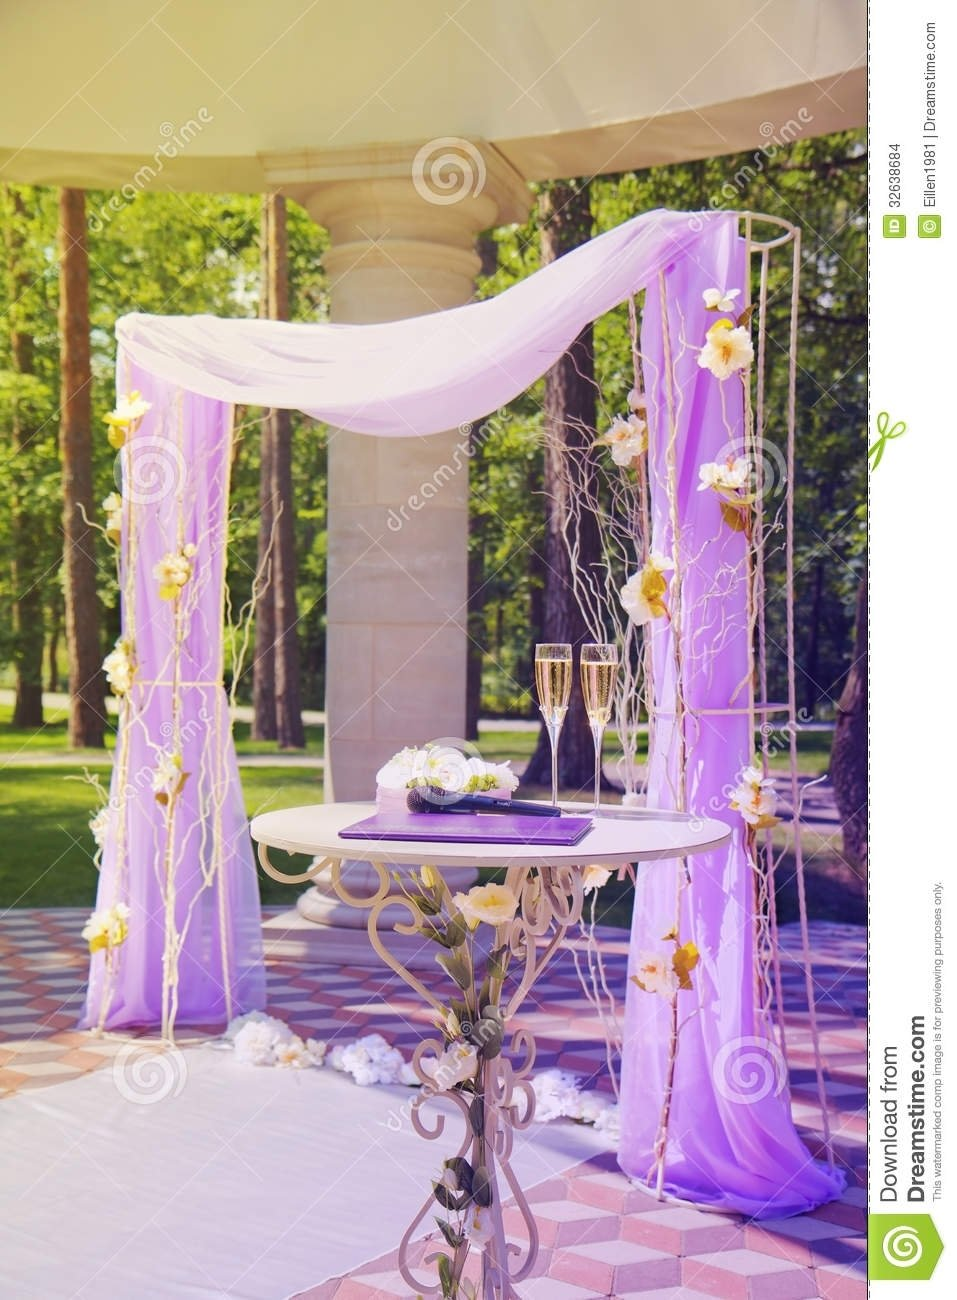 10 Attractive Wedding Ideas For Summer On A Budget wedding ideas for summer on a budget 99 wedding ideas 2020